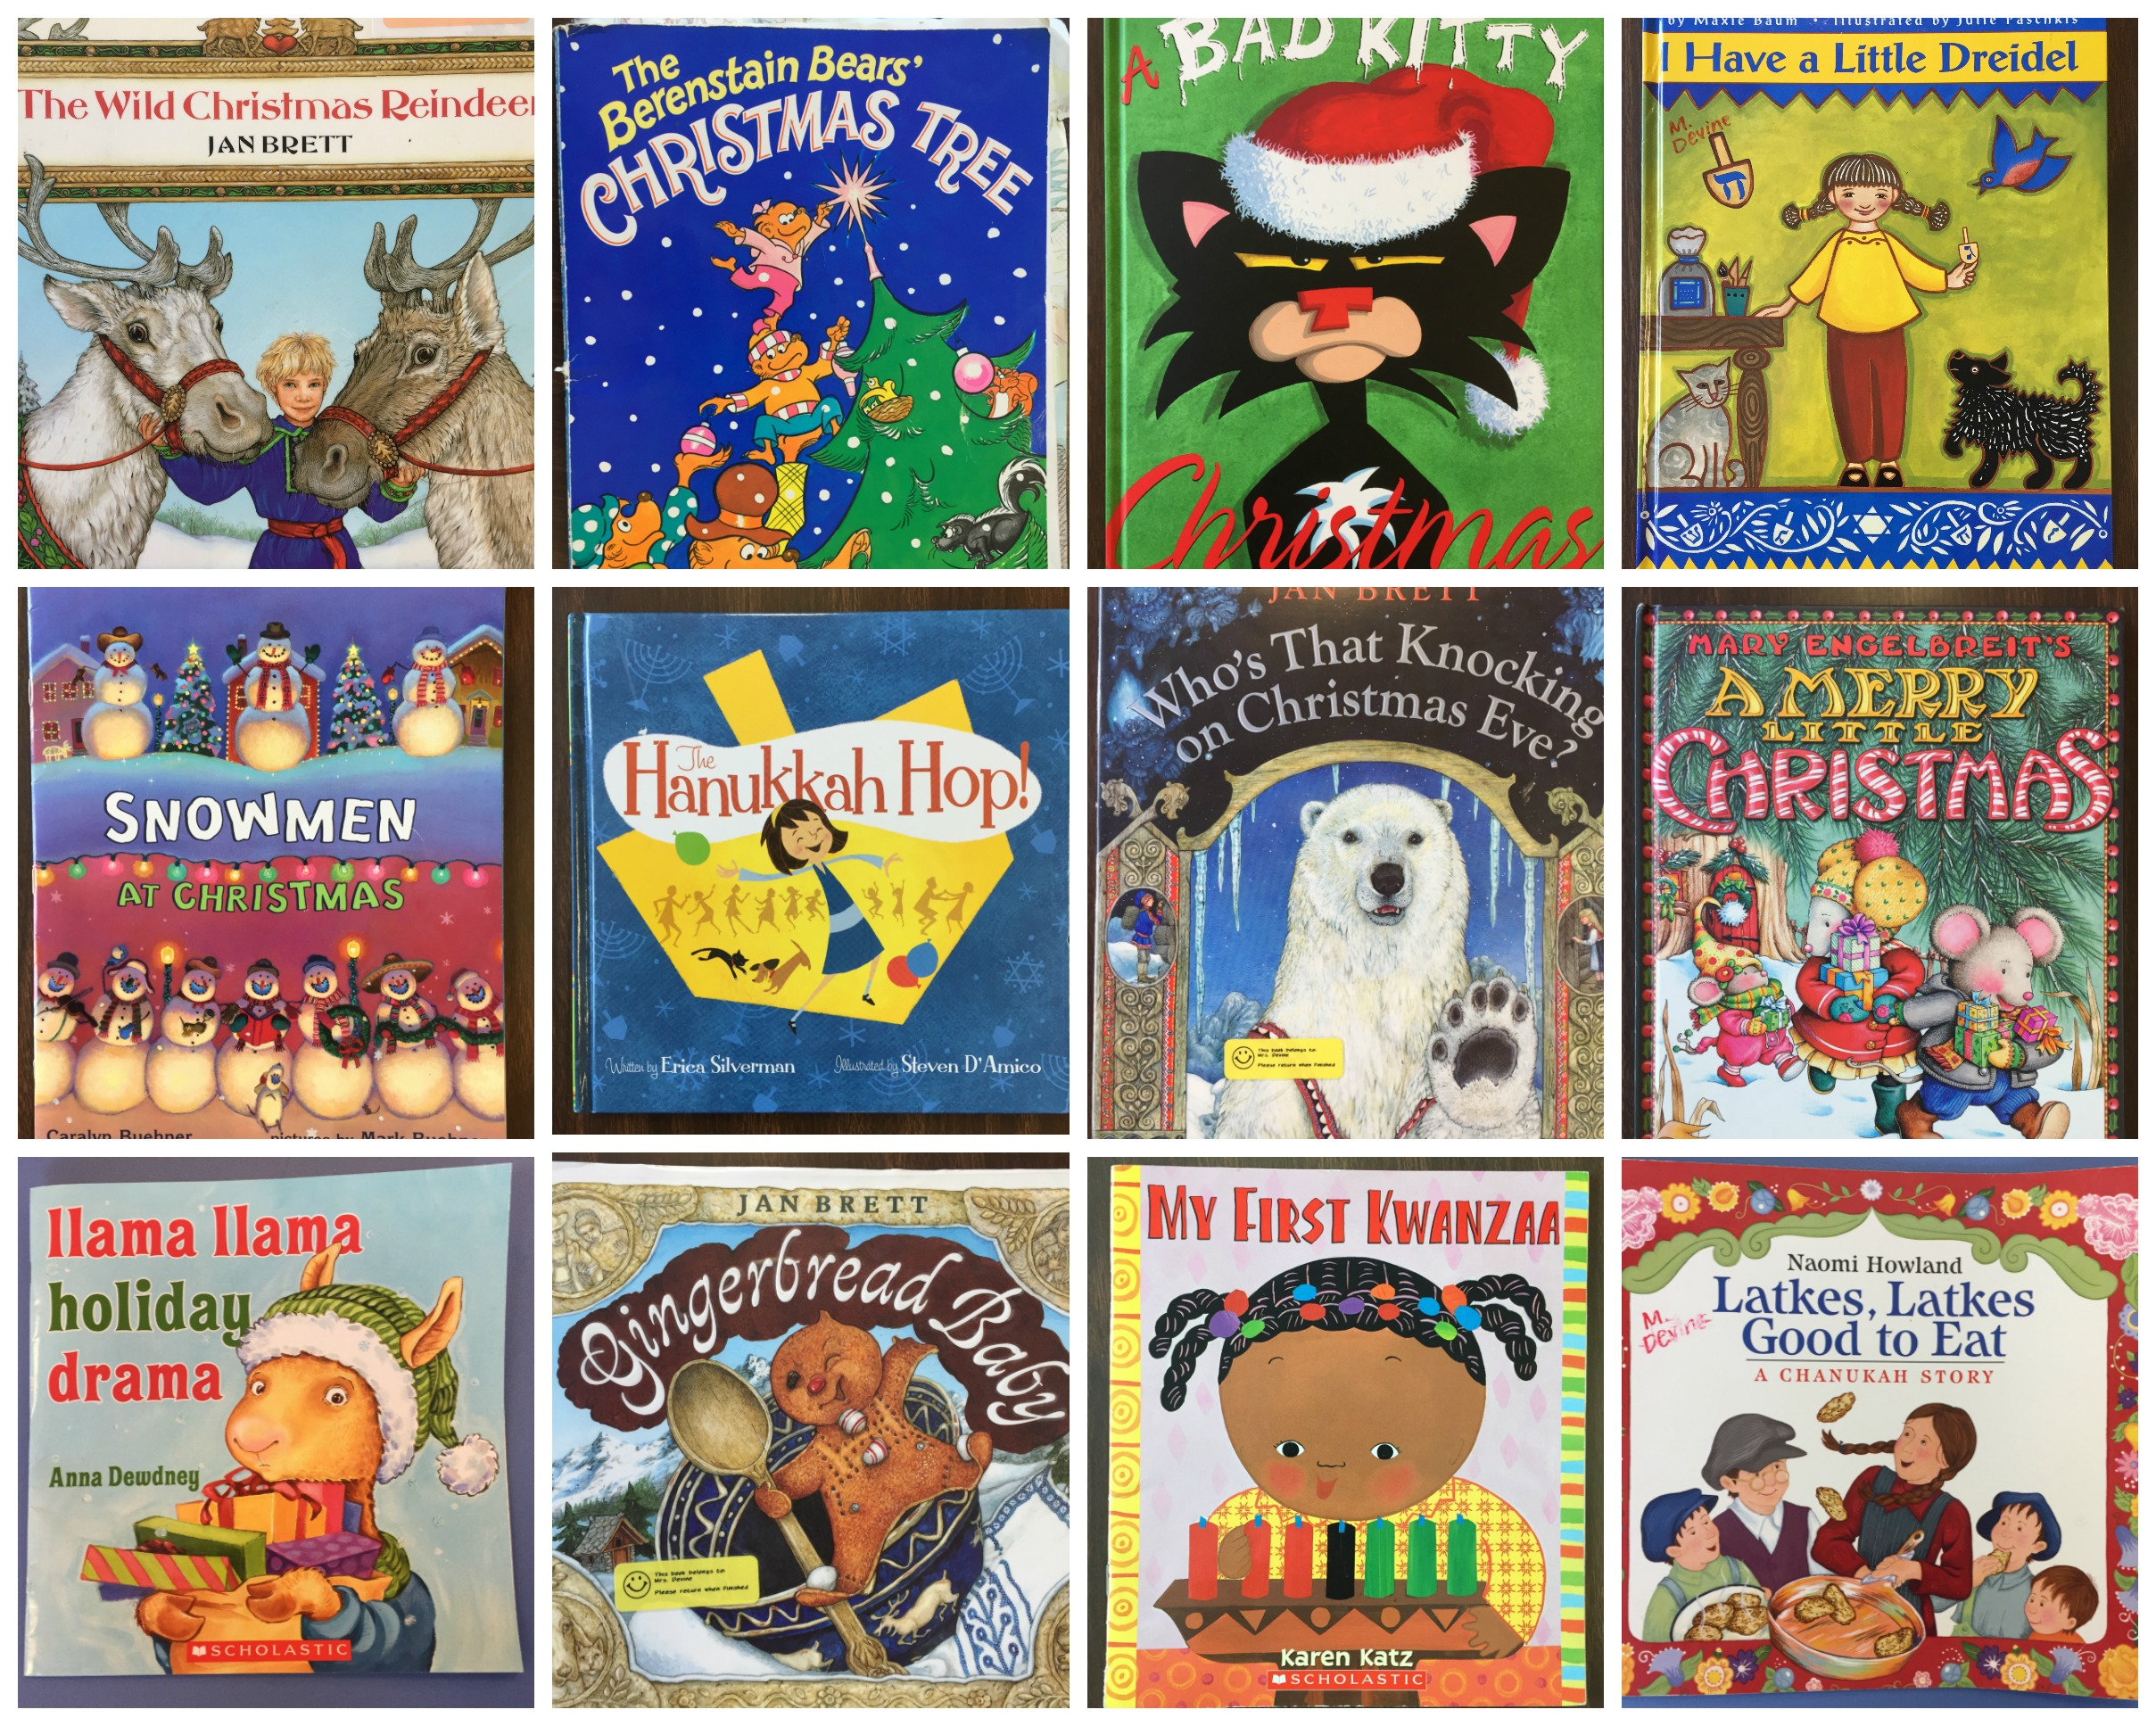 Books are a gift that you know are going to be cherished all year long, and your children will learn about holiday traditions from around the world.